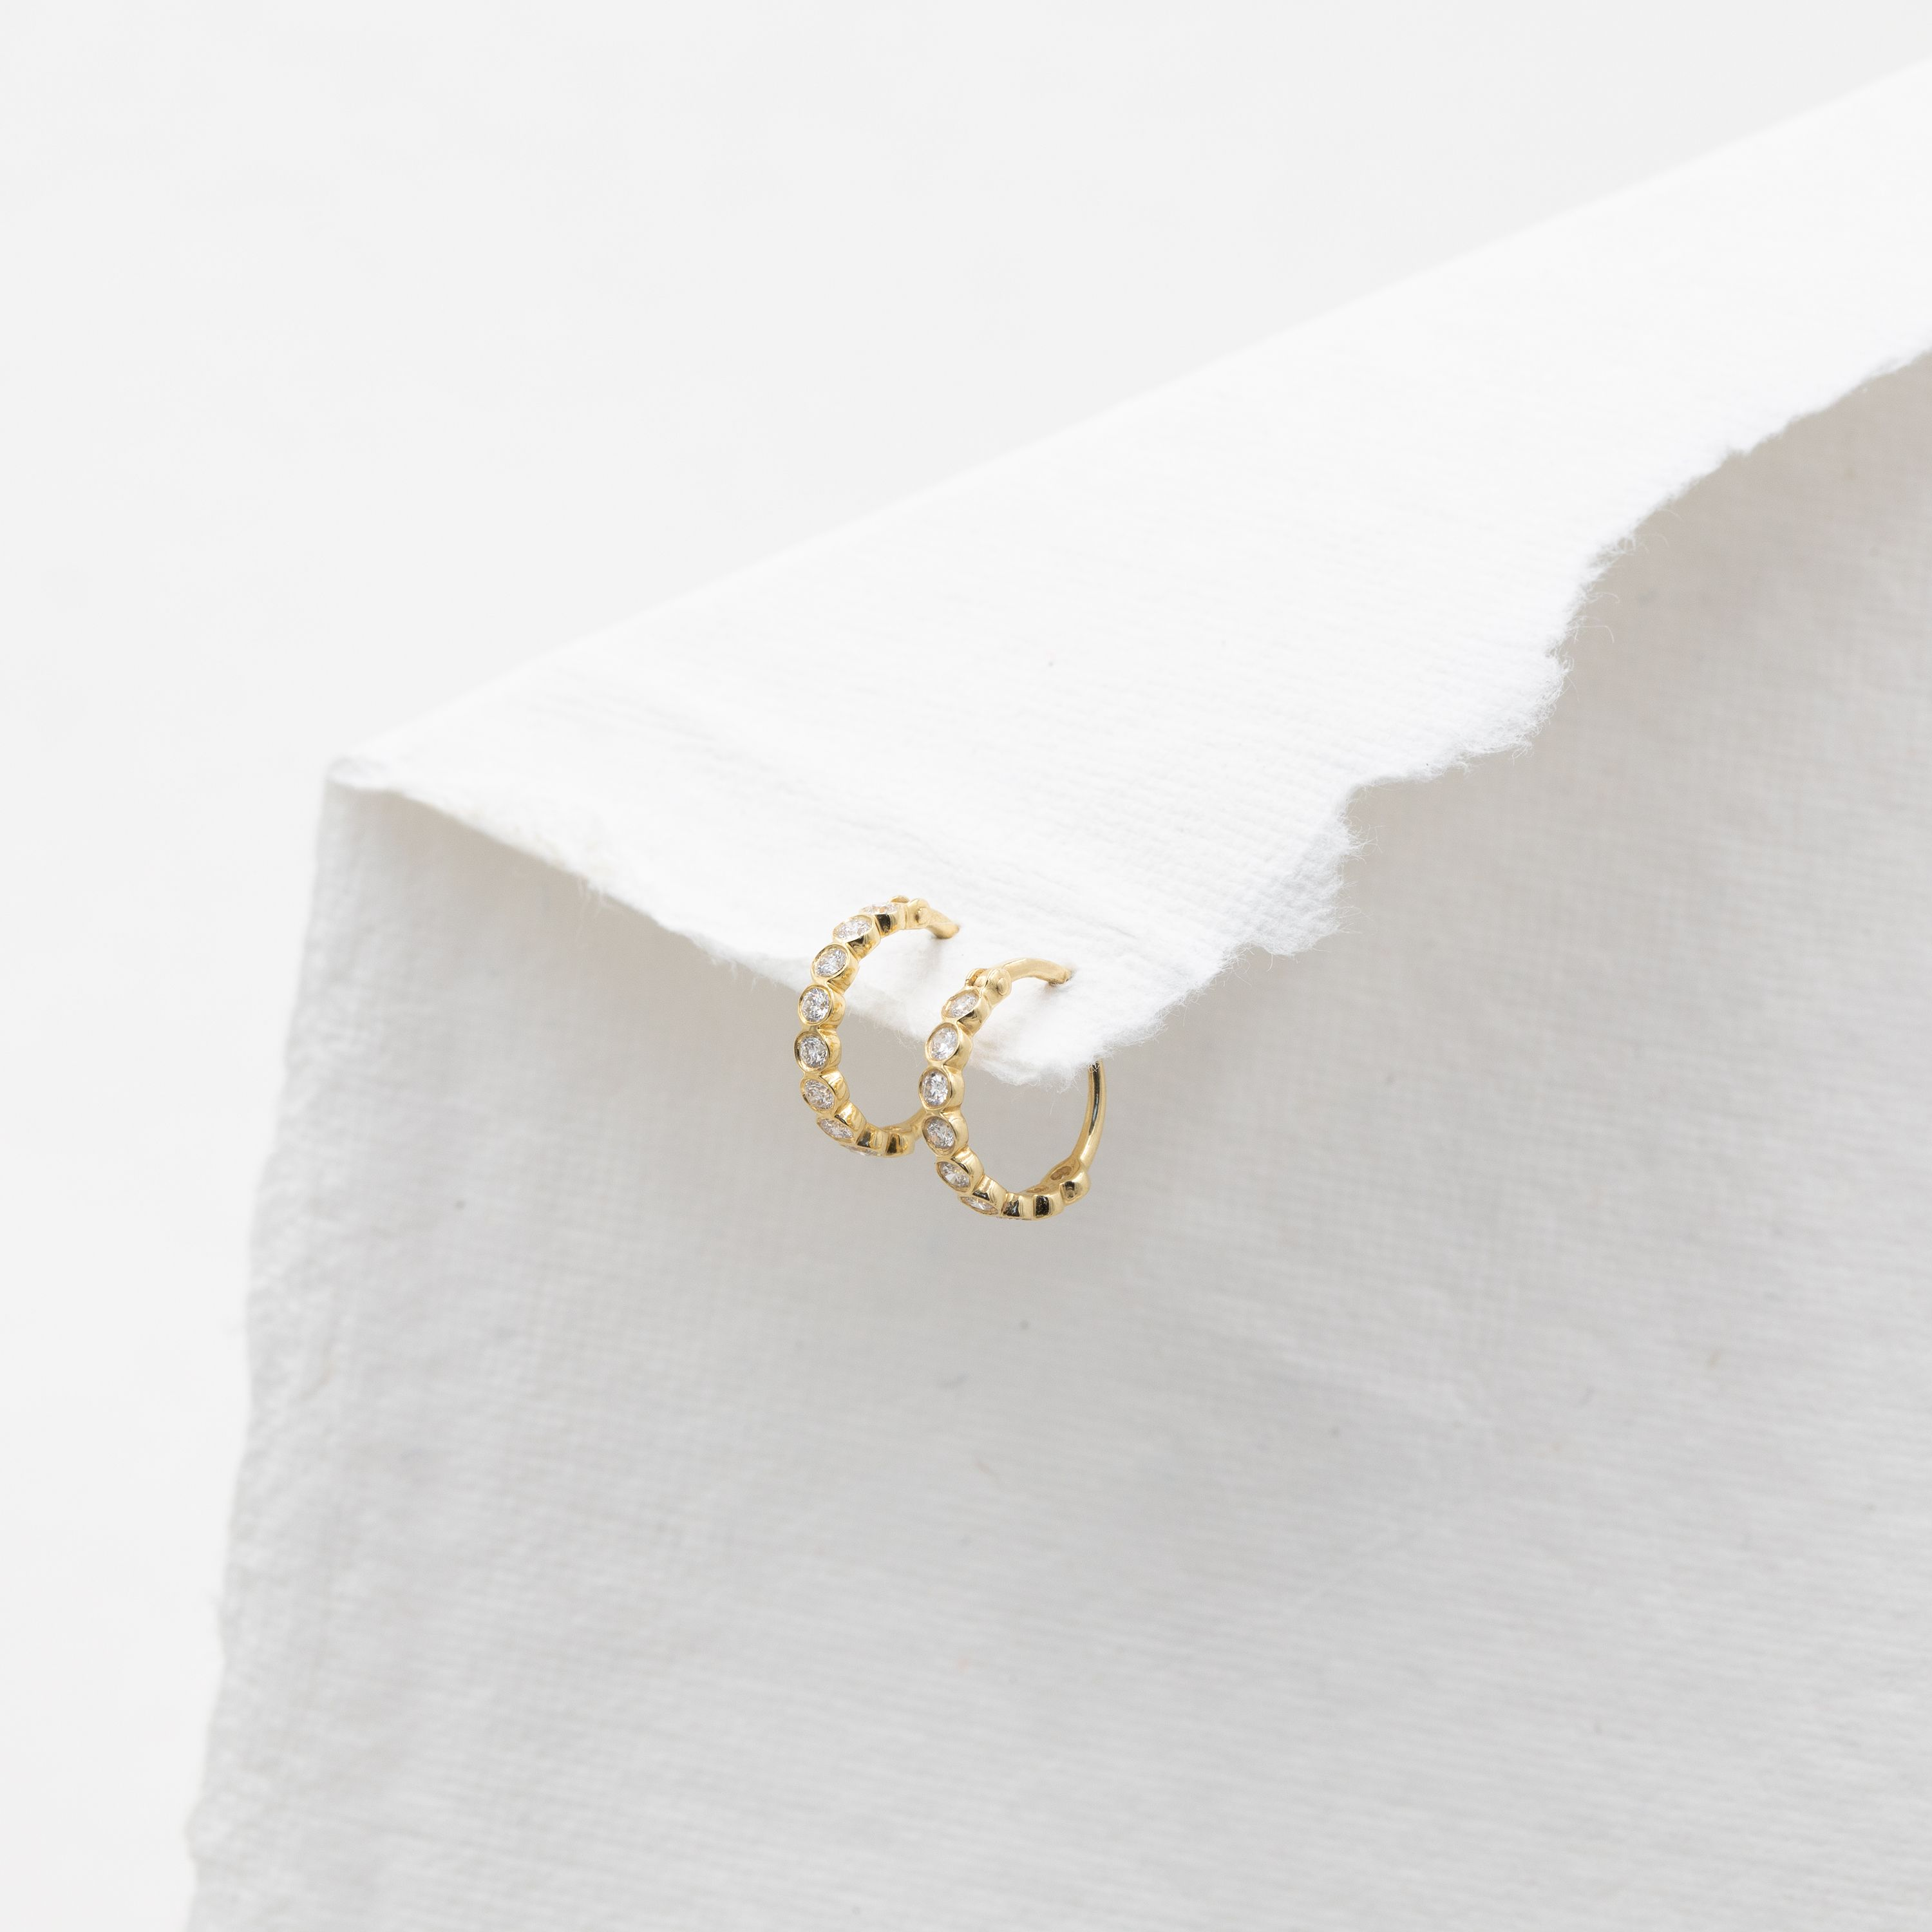 Product Image for Micro Chloe Hoops